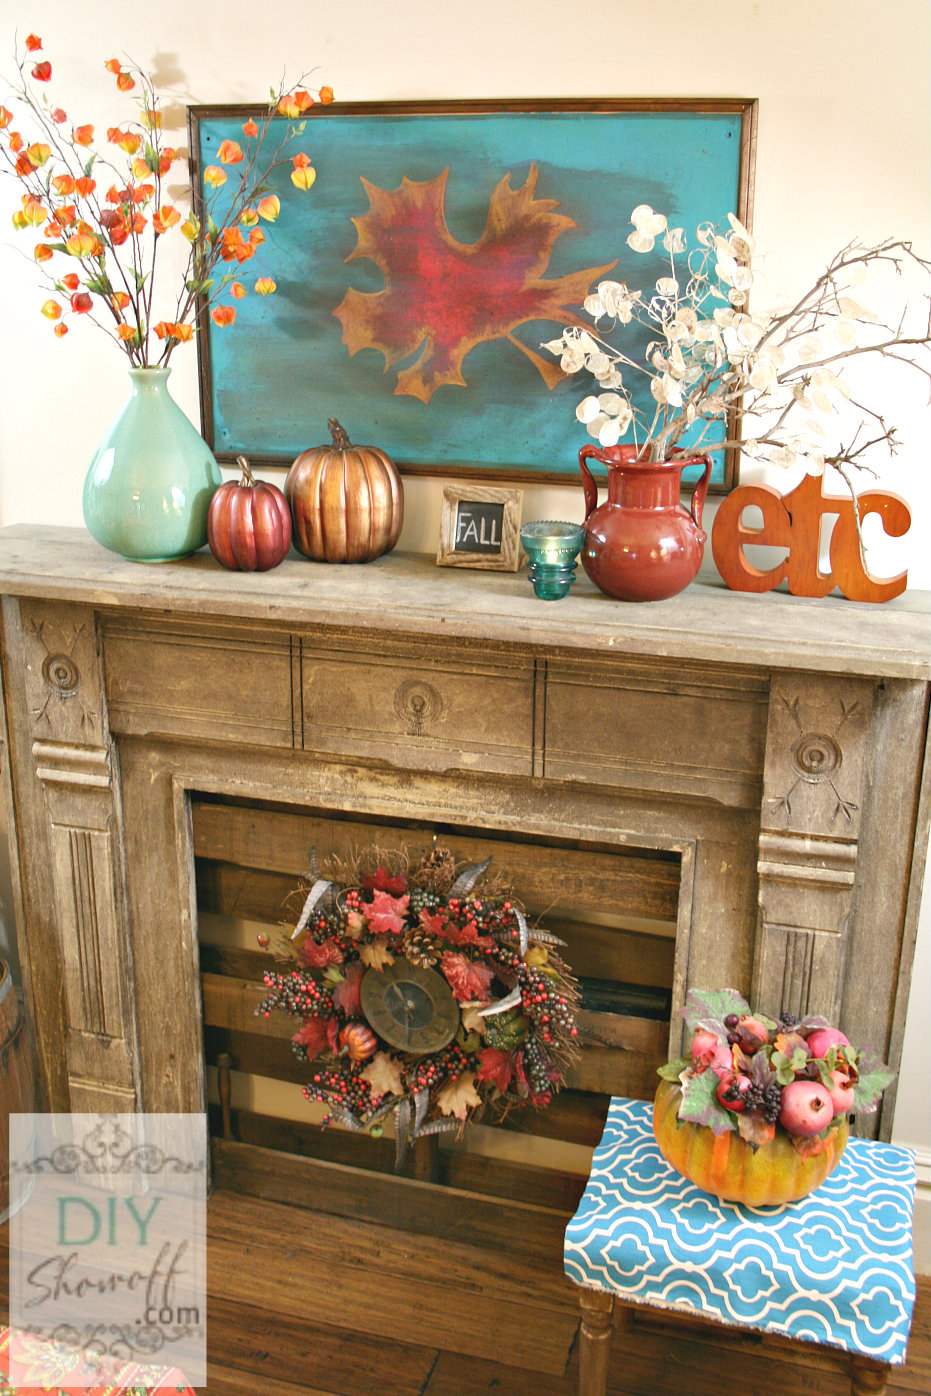 Fall Decor Ideas Fall Decor Ideas See This Design Elegant Fall With Autumn  Decorating Ideas Inside.